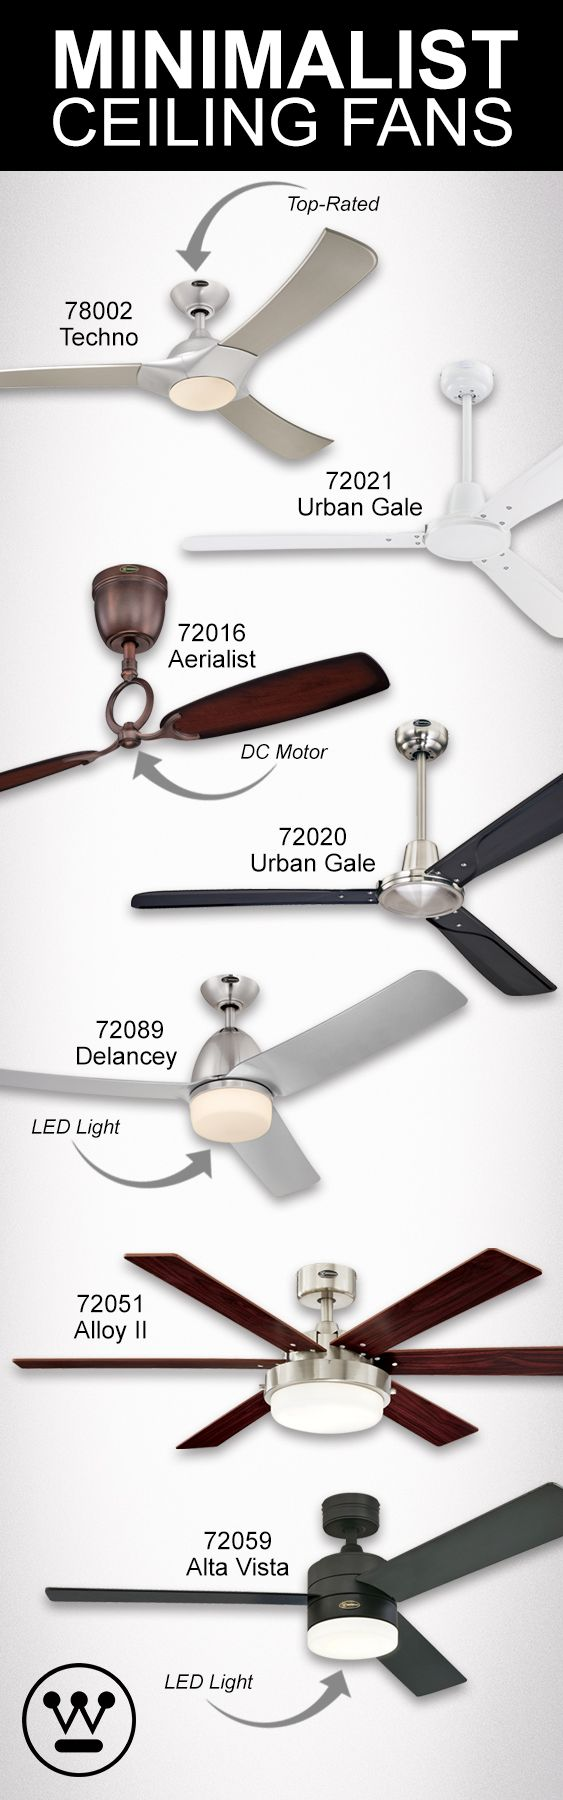 The Warmer Seasons Are Fast Approaching. Are You In The Market For A Ceiling  Fan? Here Are Some Of Our Top Picks That Can Help You Achieve A Minimalist  Look ...